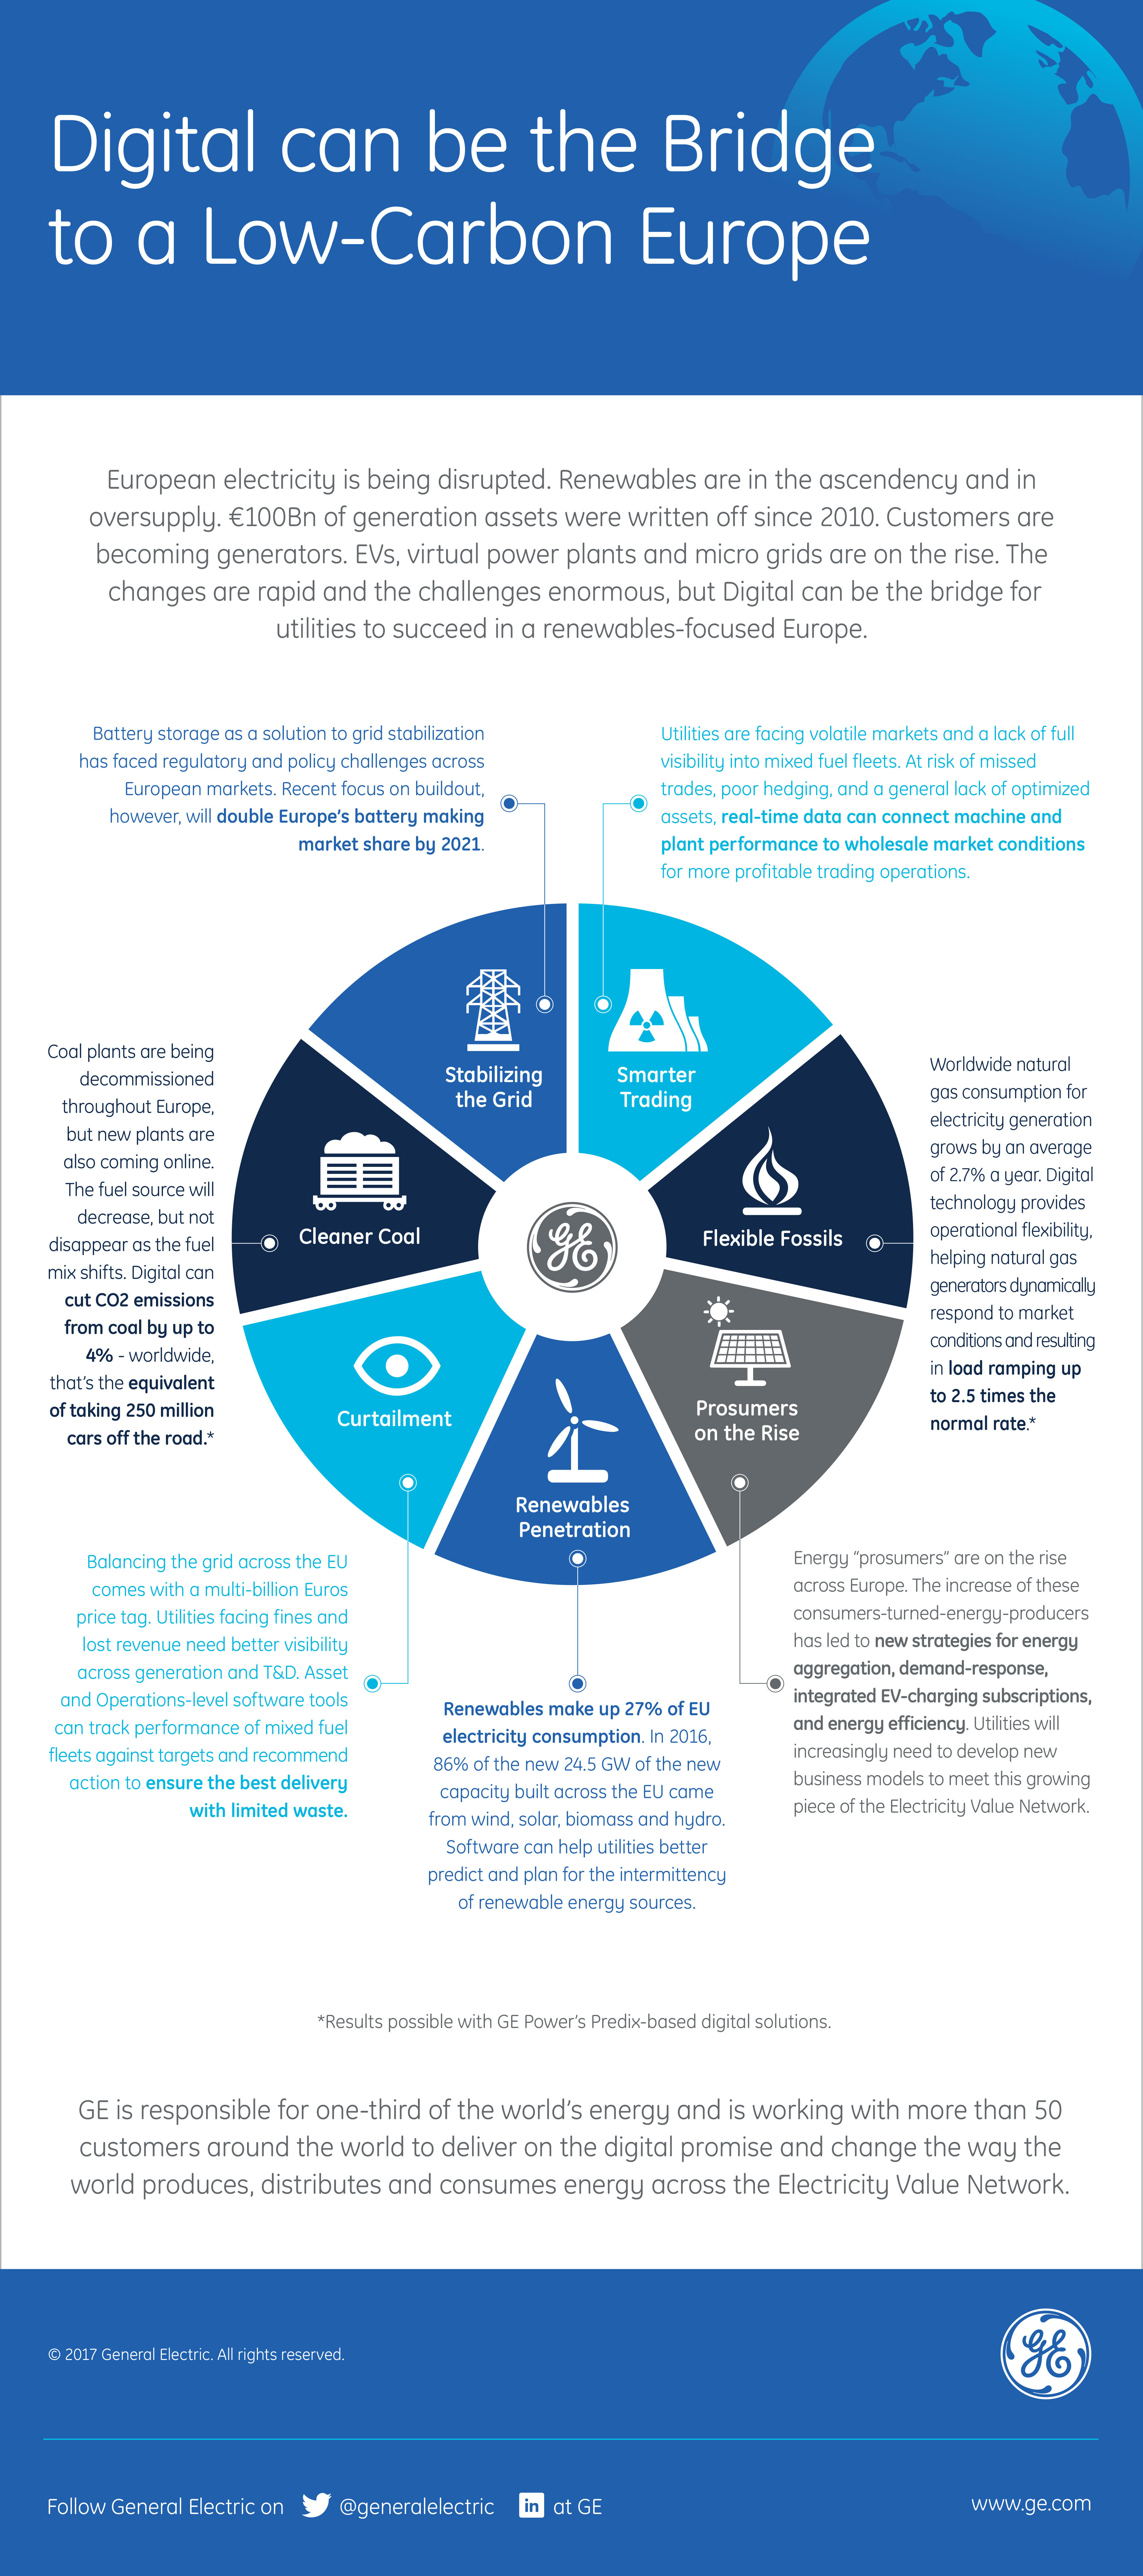 New Ge Predix Software For Power Producers And Utilities Breaks Down Diagram Of How Consumers Energy Generates Electricity From Coal Full Size